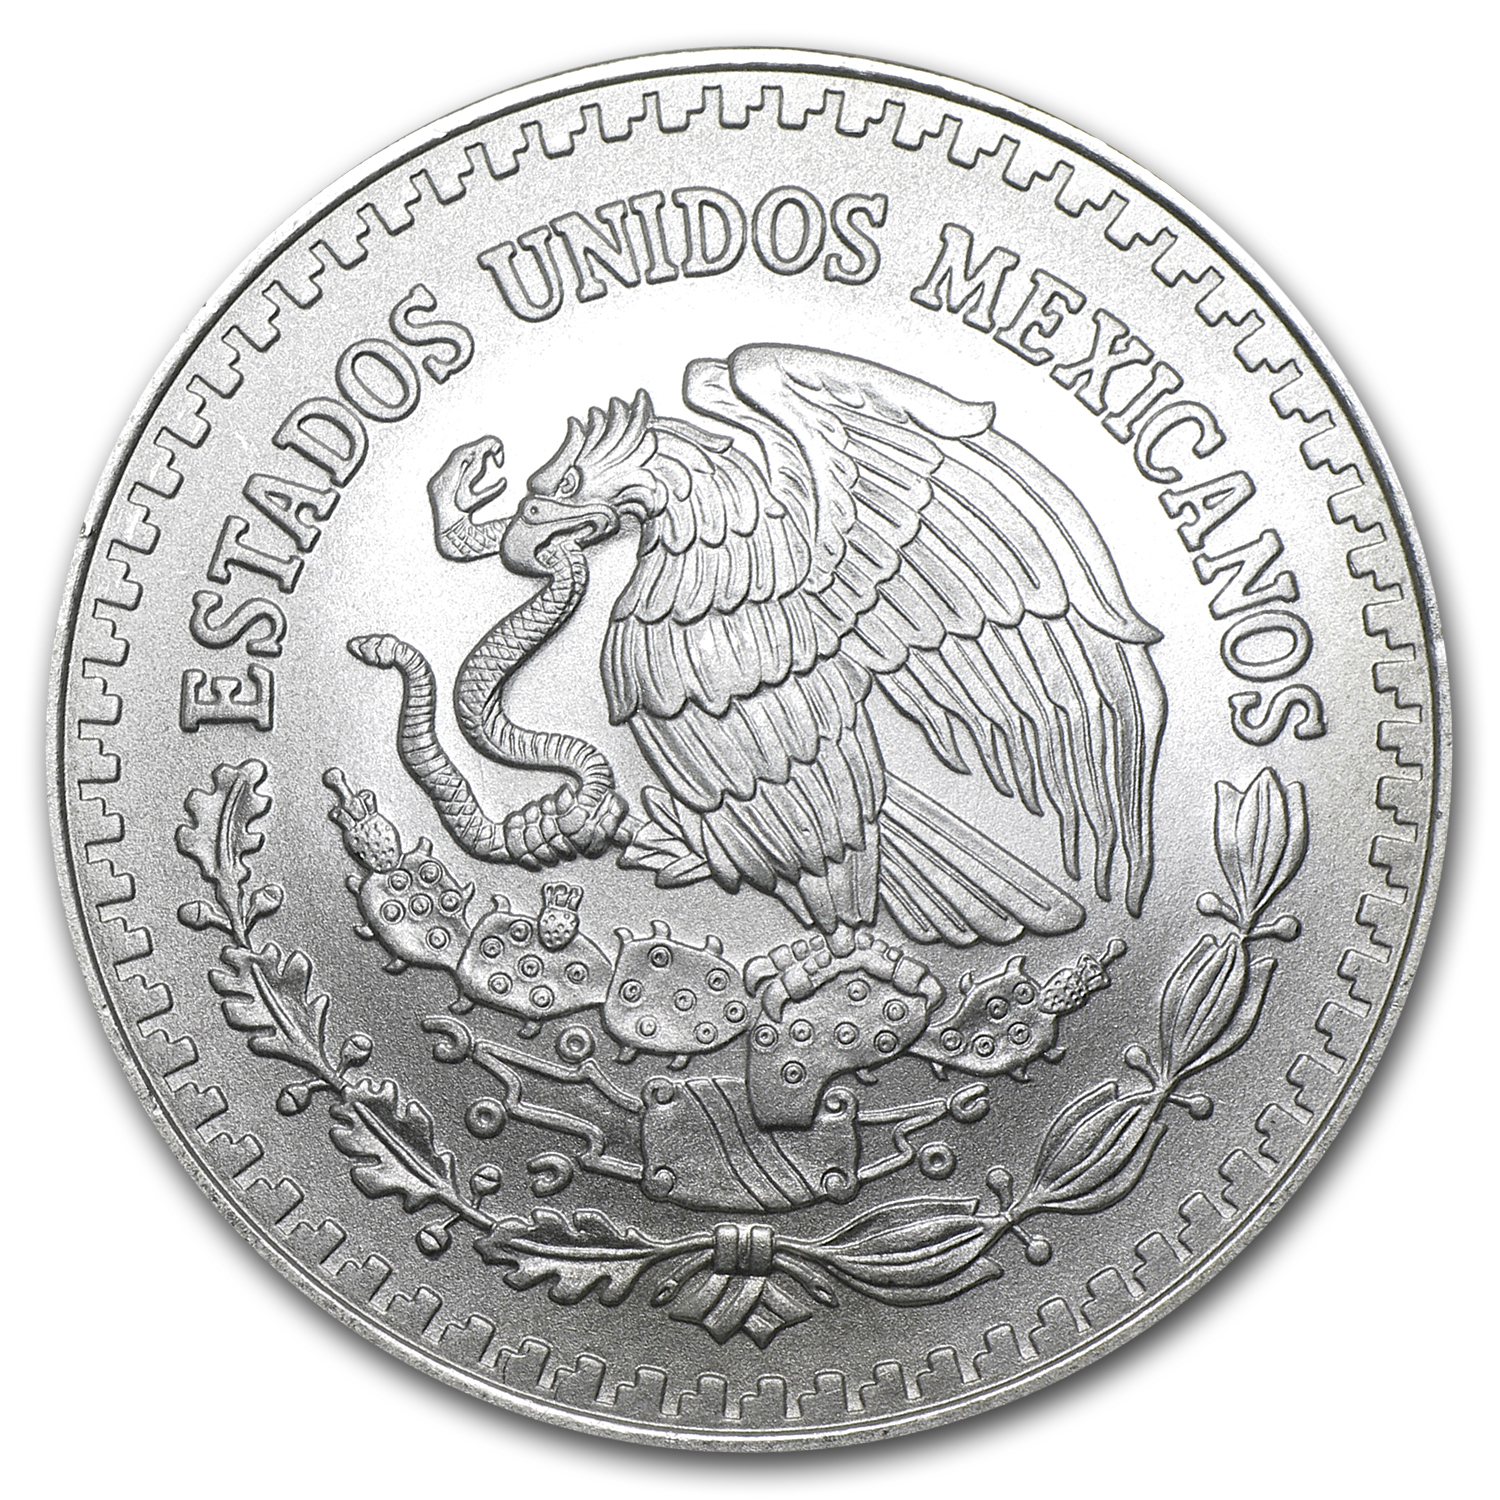 2012 1/2 oz Silver Libertad (Brilliant Uncirculated)